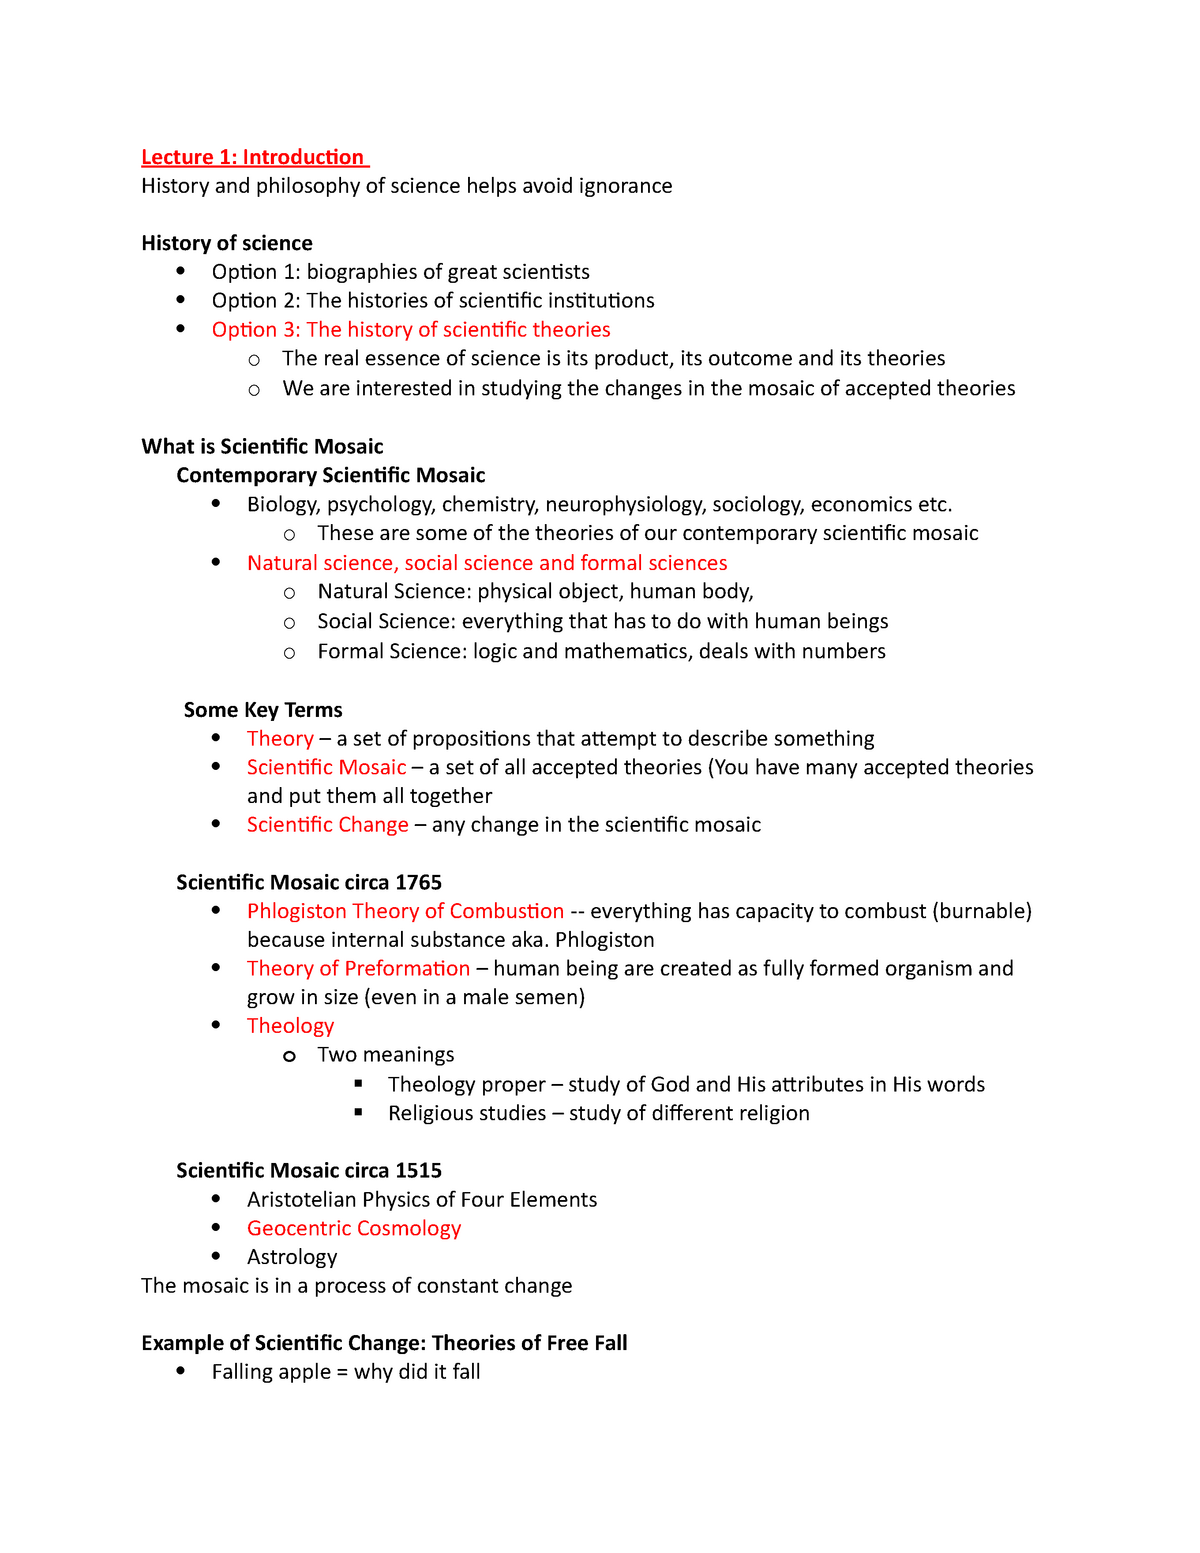 HPS100-Lecture Notes - Hps100H1: Introduction to History and